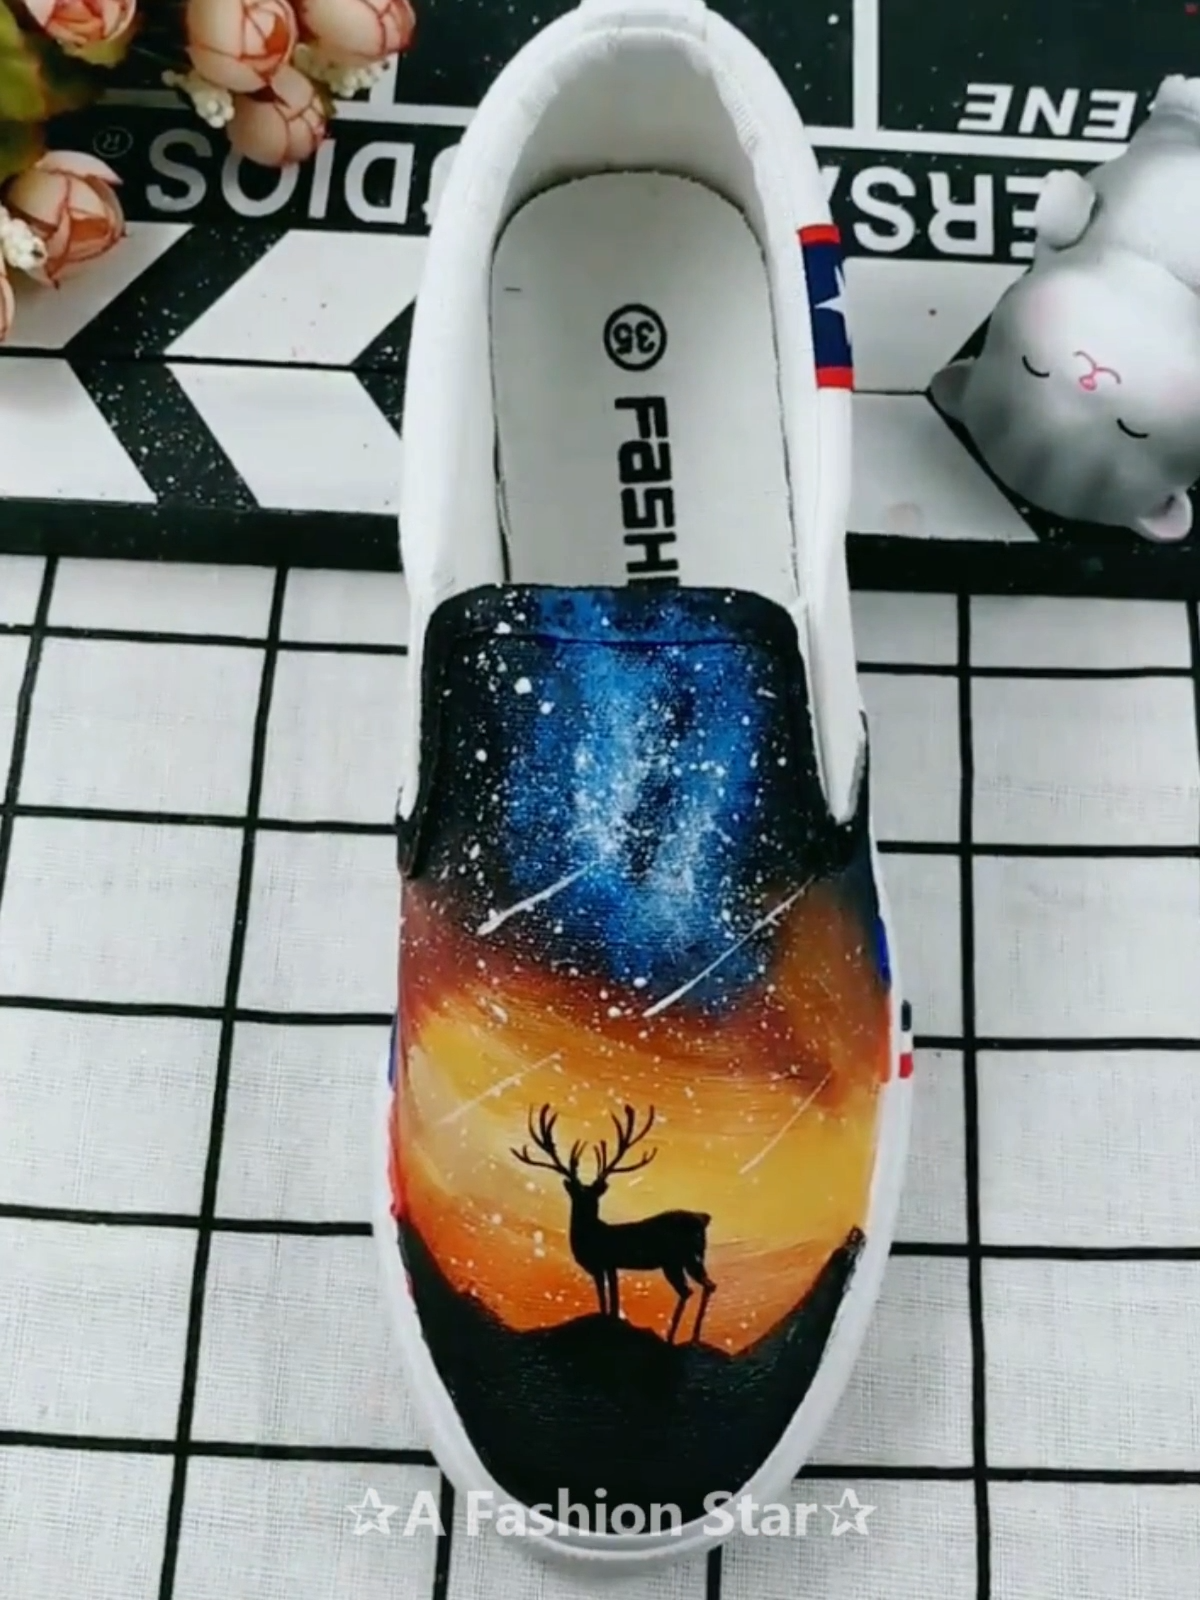 How To Paint Canvas Shoes 5 Amazing Painting Shoes Ideas Video Painted Canvas Shoes Art Shoes Painting Painted Shoes